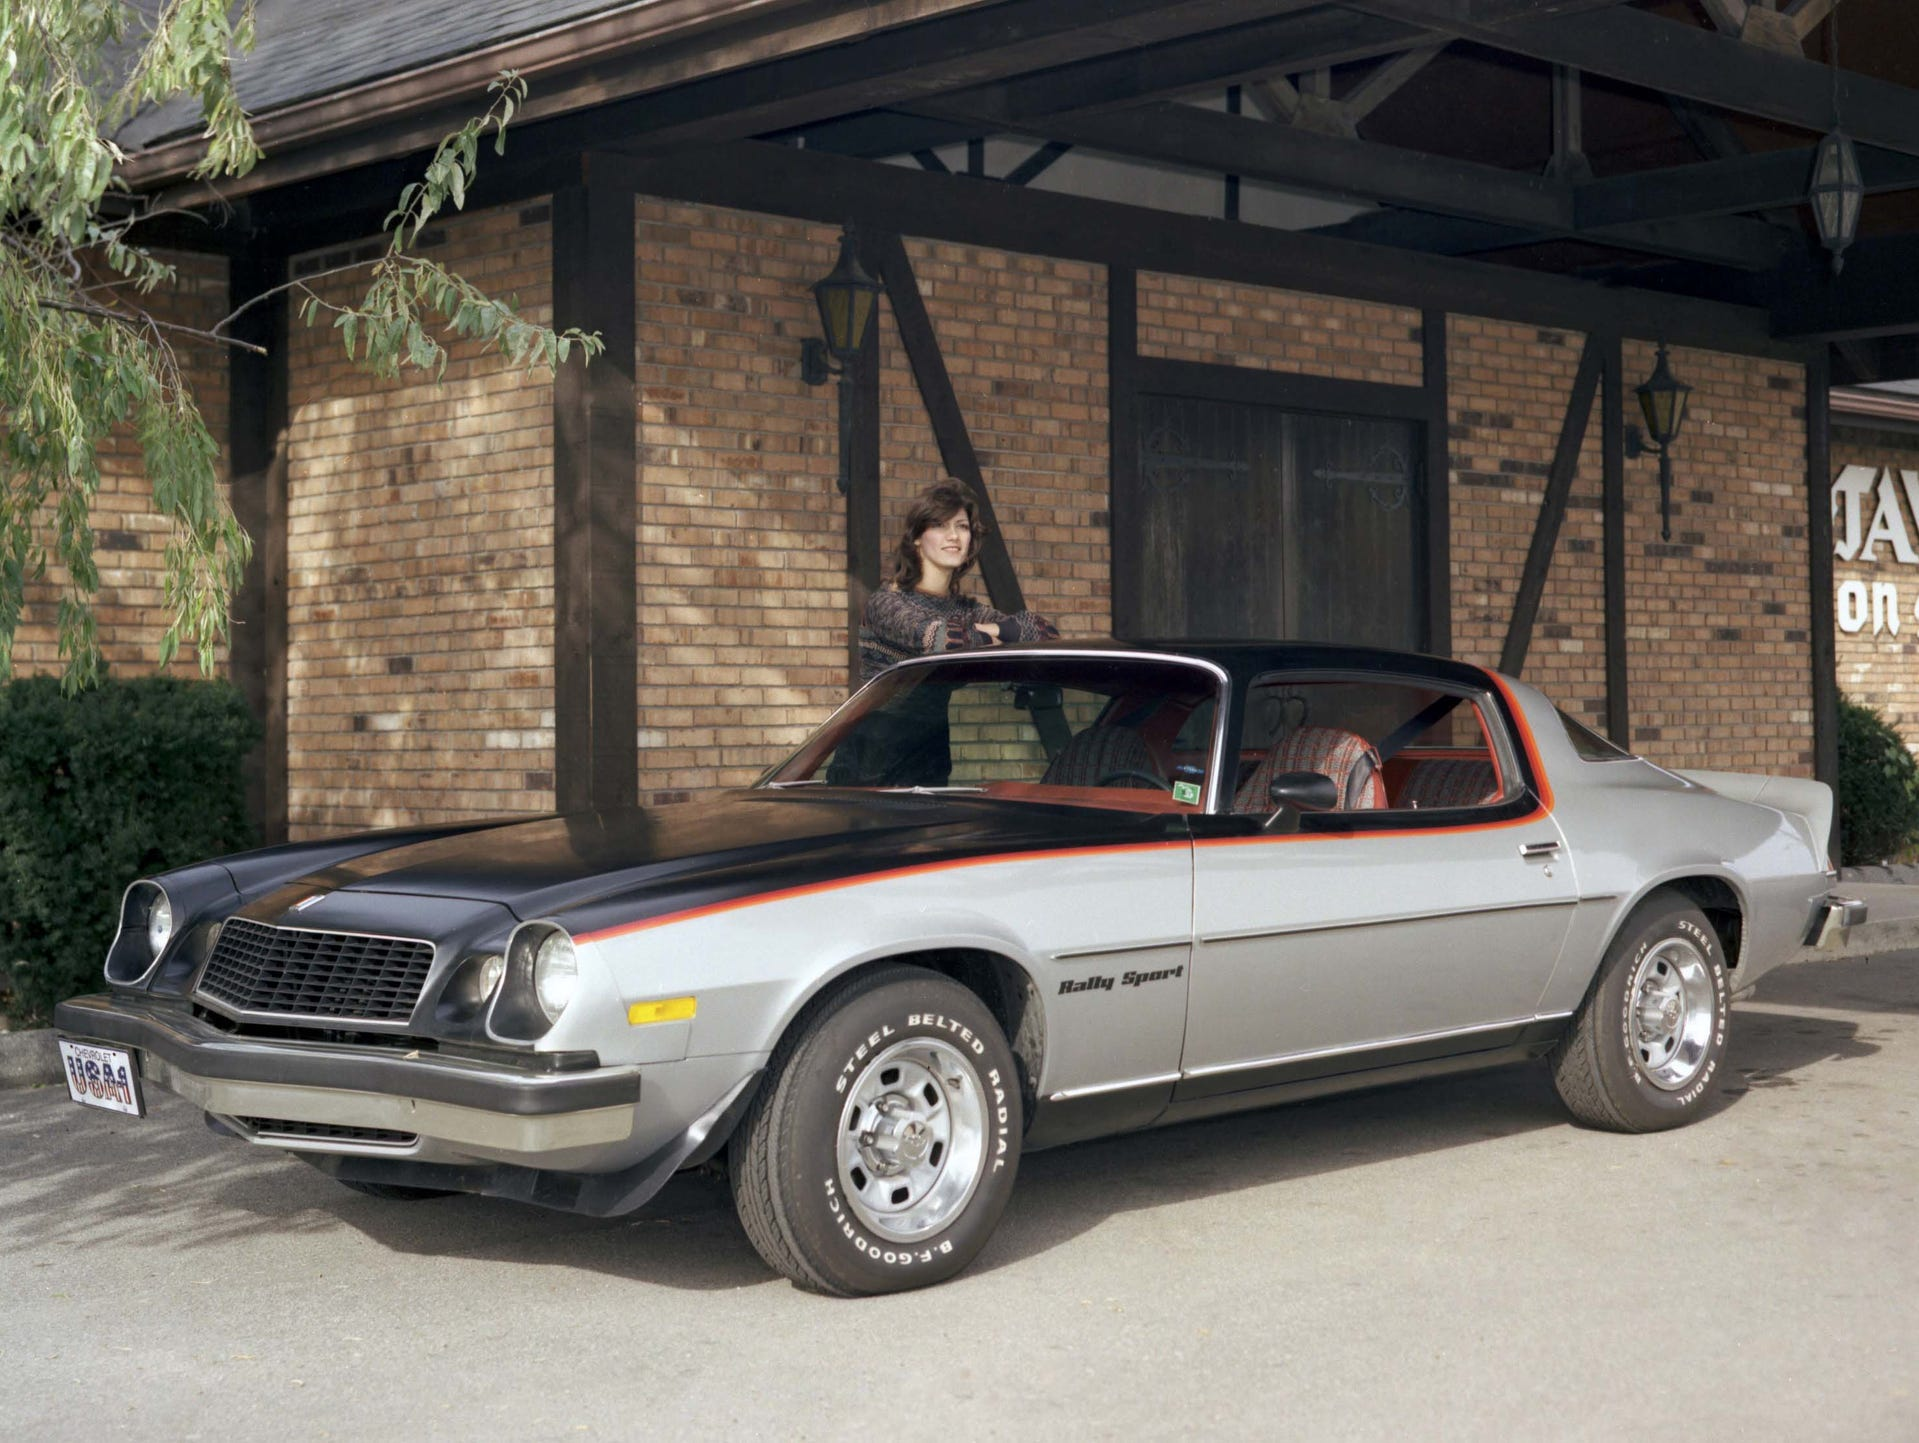 1975: Tightening emissions regs doomed the Z28 and